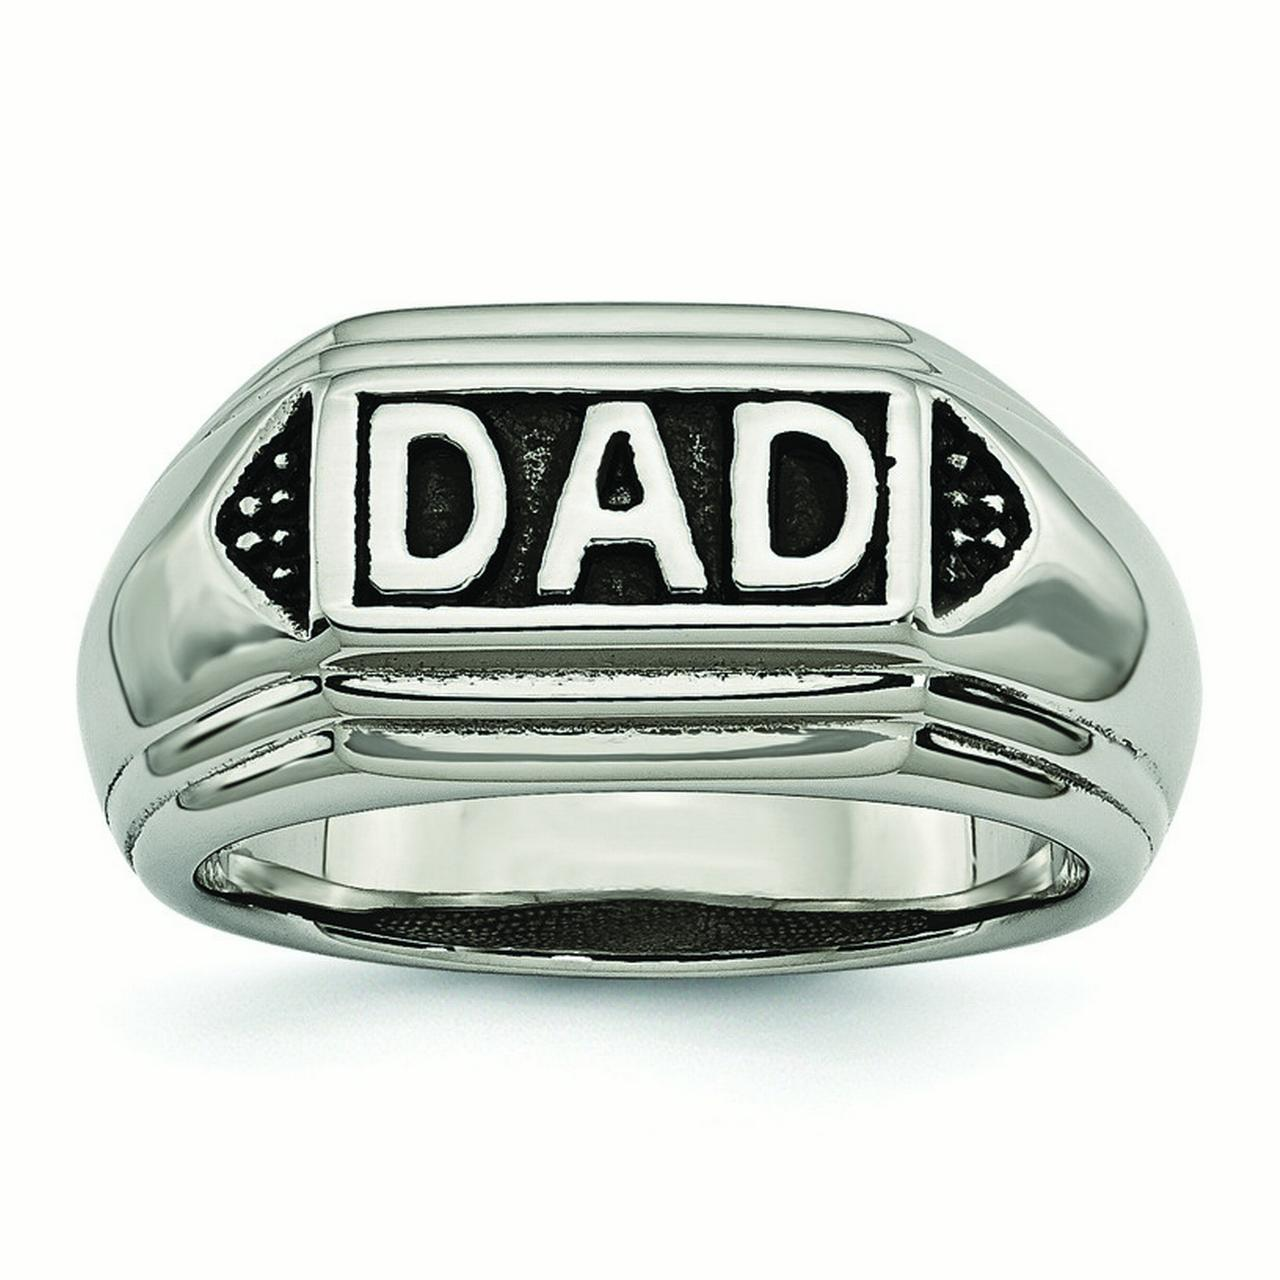 Stainless Steel Black Enamel Dad Ring - Ring Size: 9 to 12